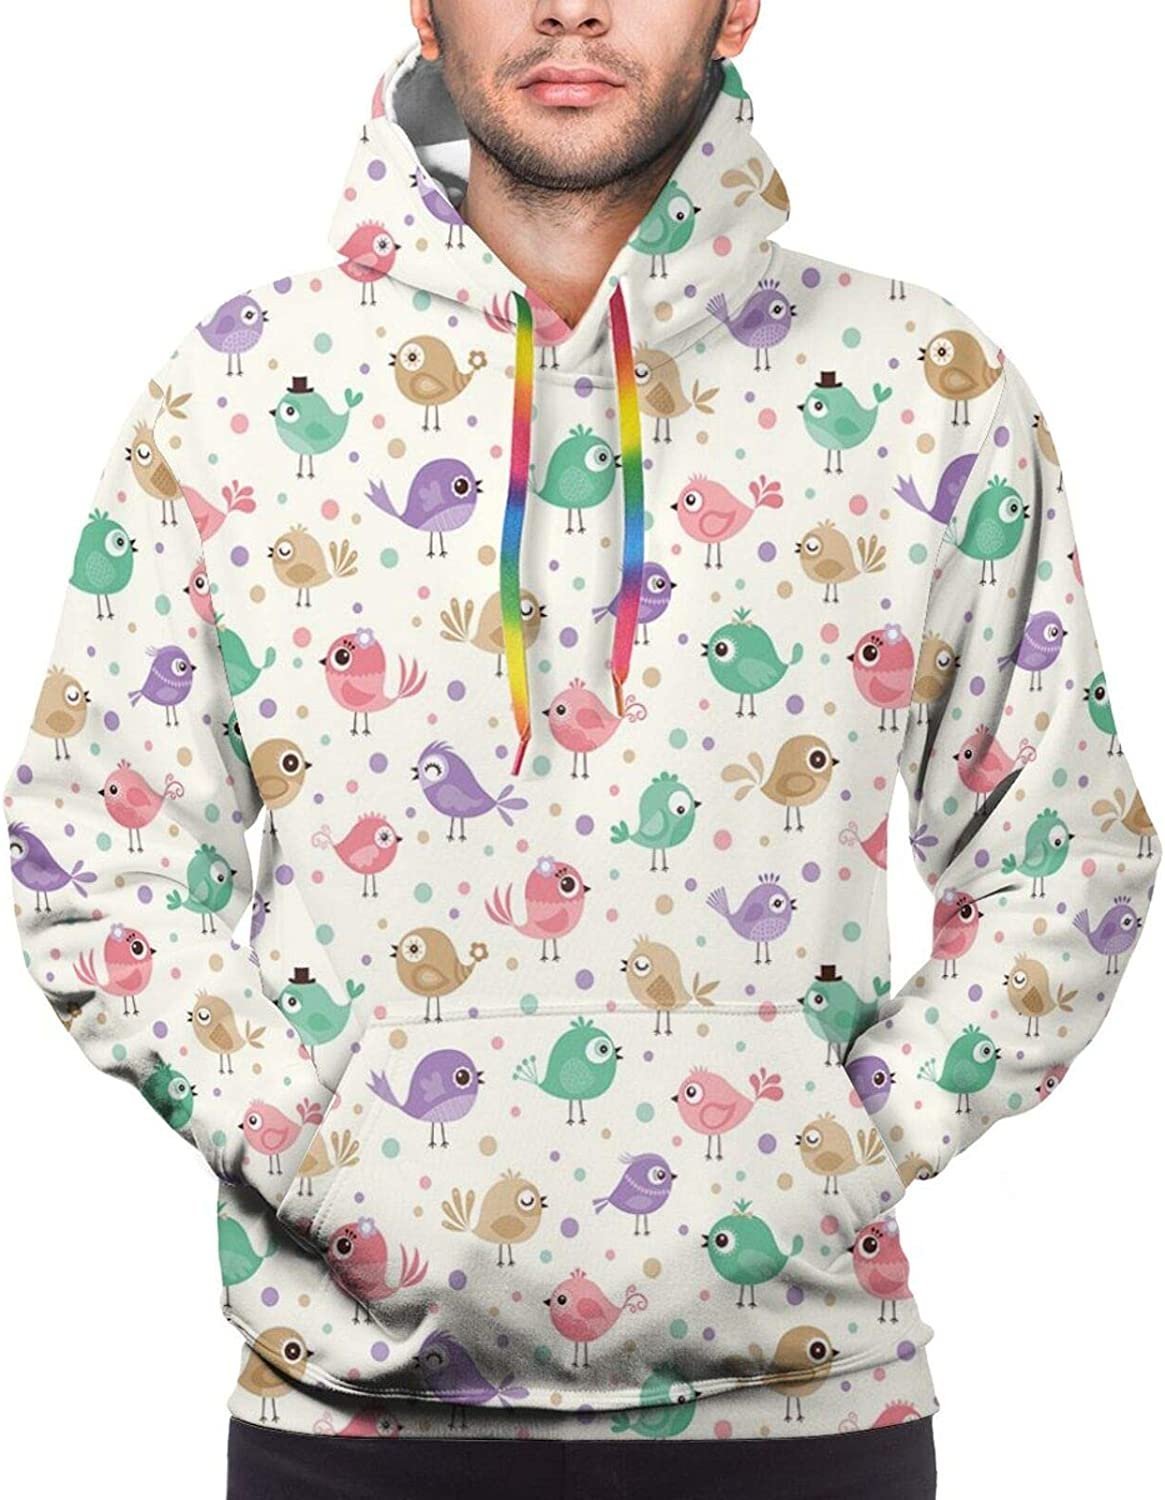 Men's Hoodies Sweatshirts,Colorful Dots with Halftone Effect Illusion of The Gradient Dynamic Fantasy Artistic